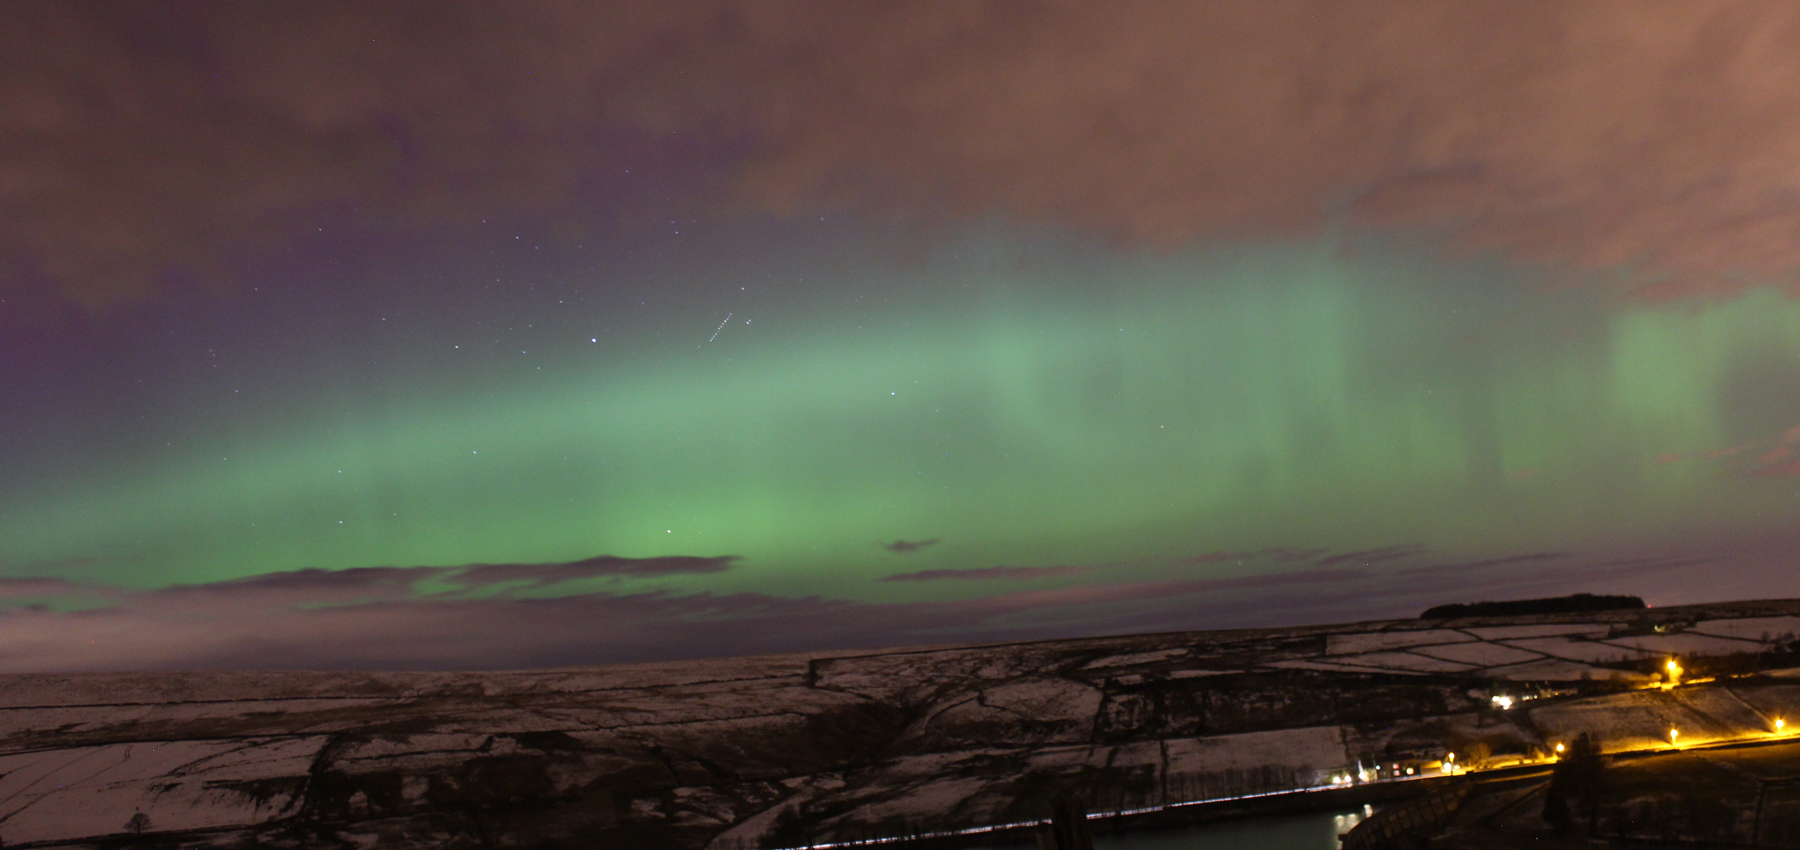 The Aurora taken by Sarah Hall & Colin Campbell